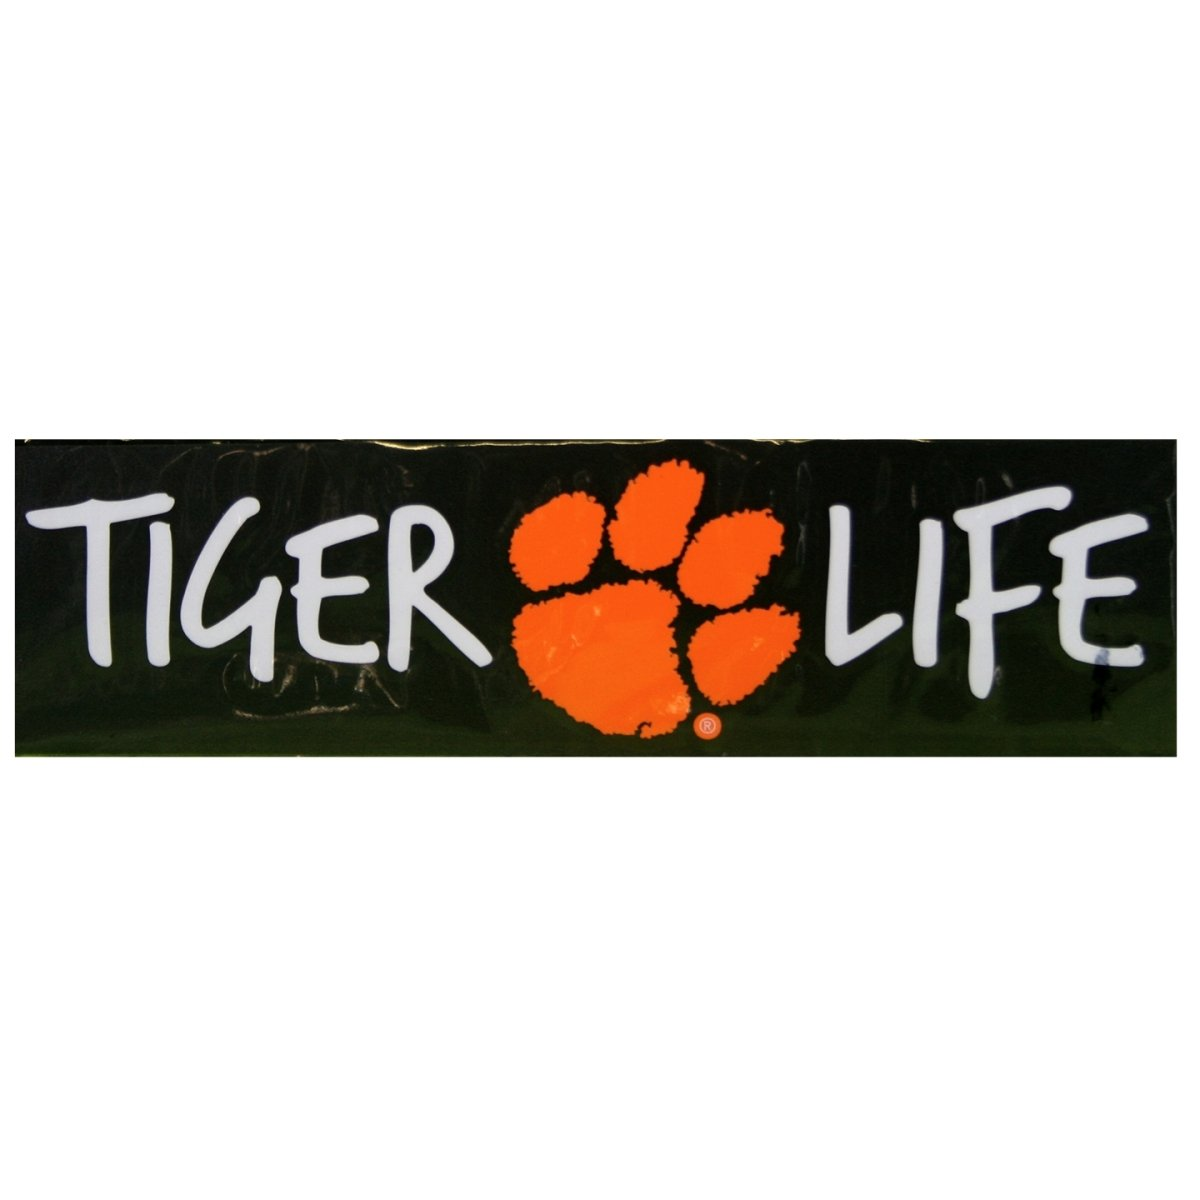 "SDS Design Clemson Tigers 10"" Tiger Life Decal - Mr. Knickerbocker"